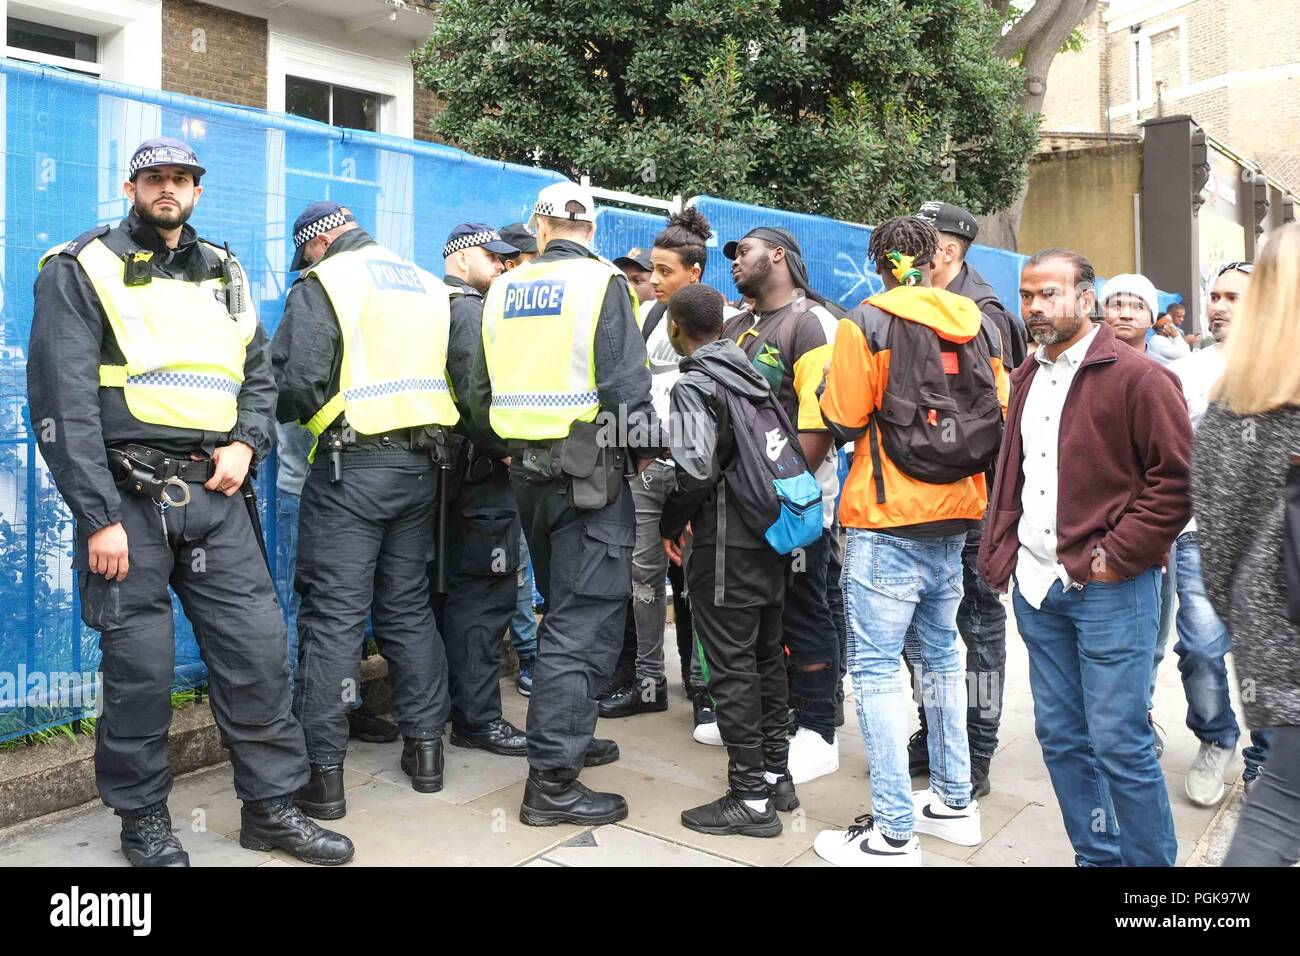 London, UK. 27th August 2018. Met police stop and search young men on the second day of  Notting Hill Carnival. The second day of the Notting Hill Carnival has been put under a Section 60 Order for the whole day. Section 60 gives police the power to search people.Credit: Claire Doherty/Alamy Live News - Stock Image